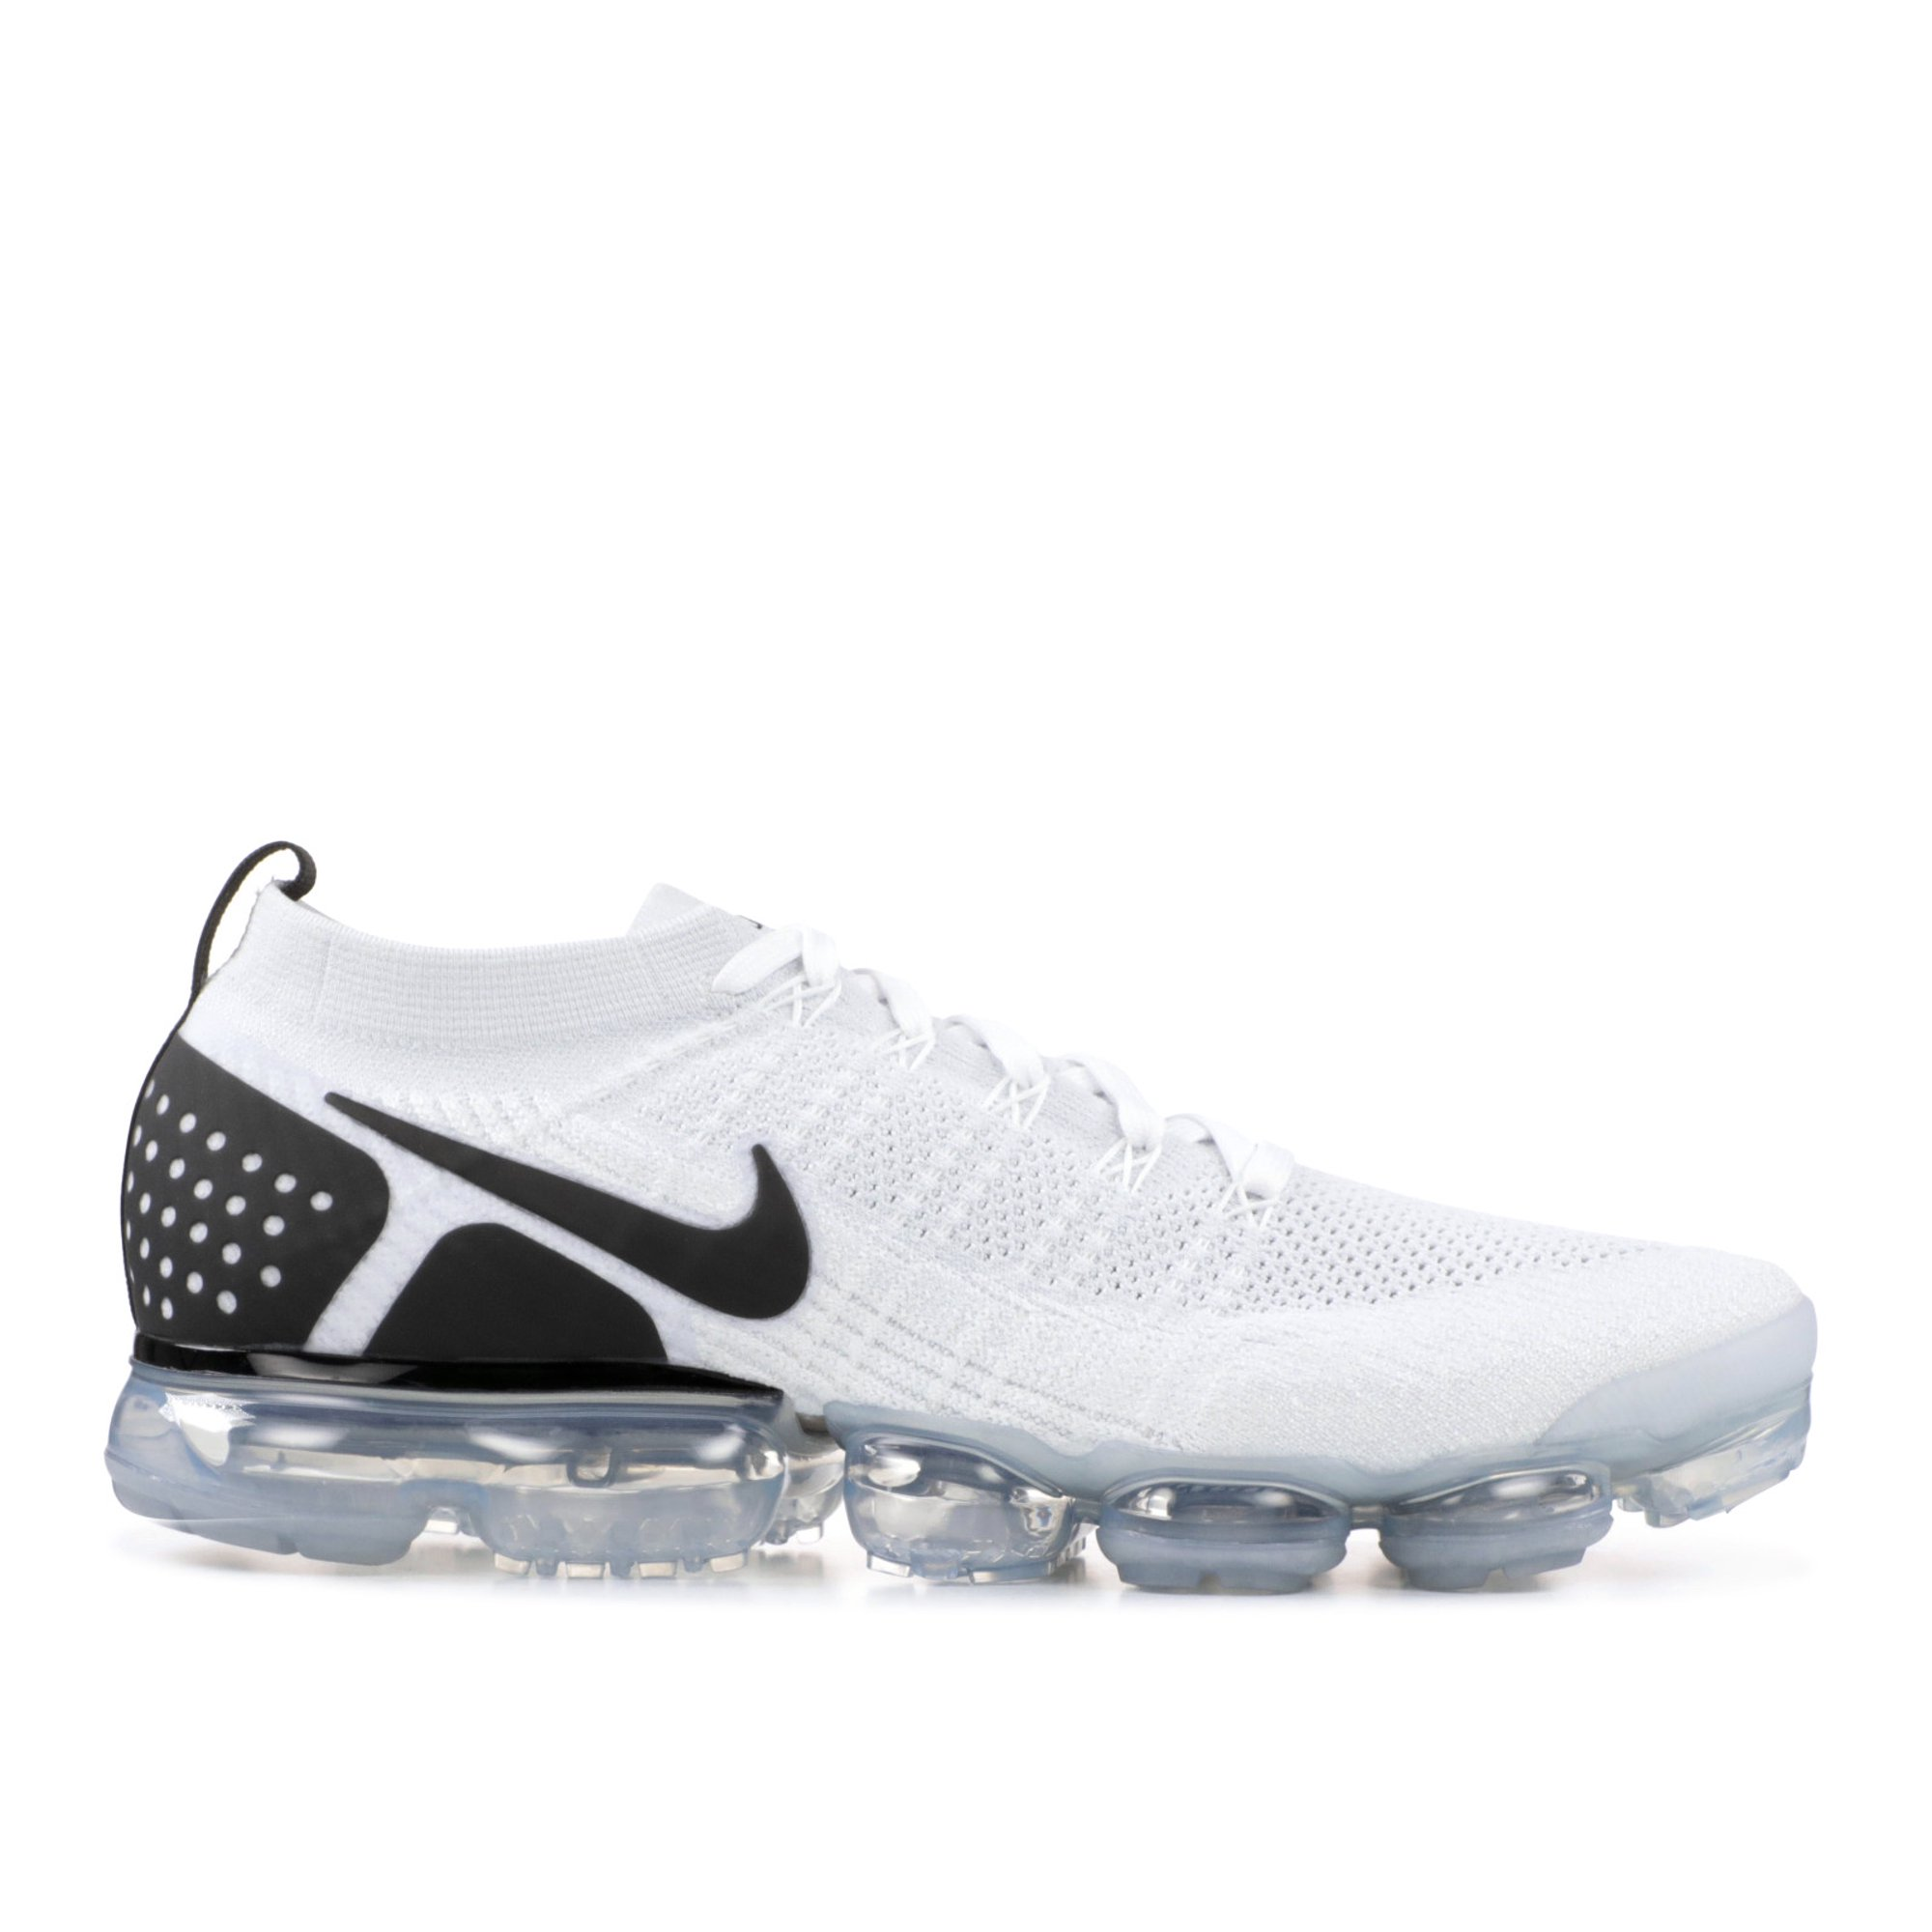 lowest price 36fbb 642c7 Nike - Men - Nike Air Vapormax Flyknit 2 'Reverse Orca ...